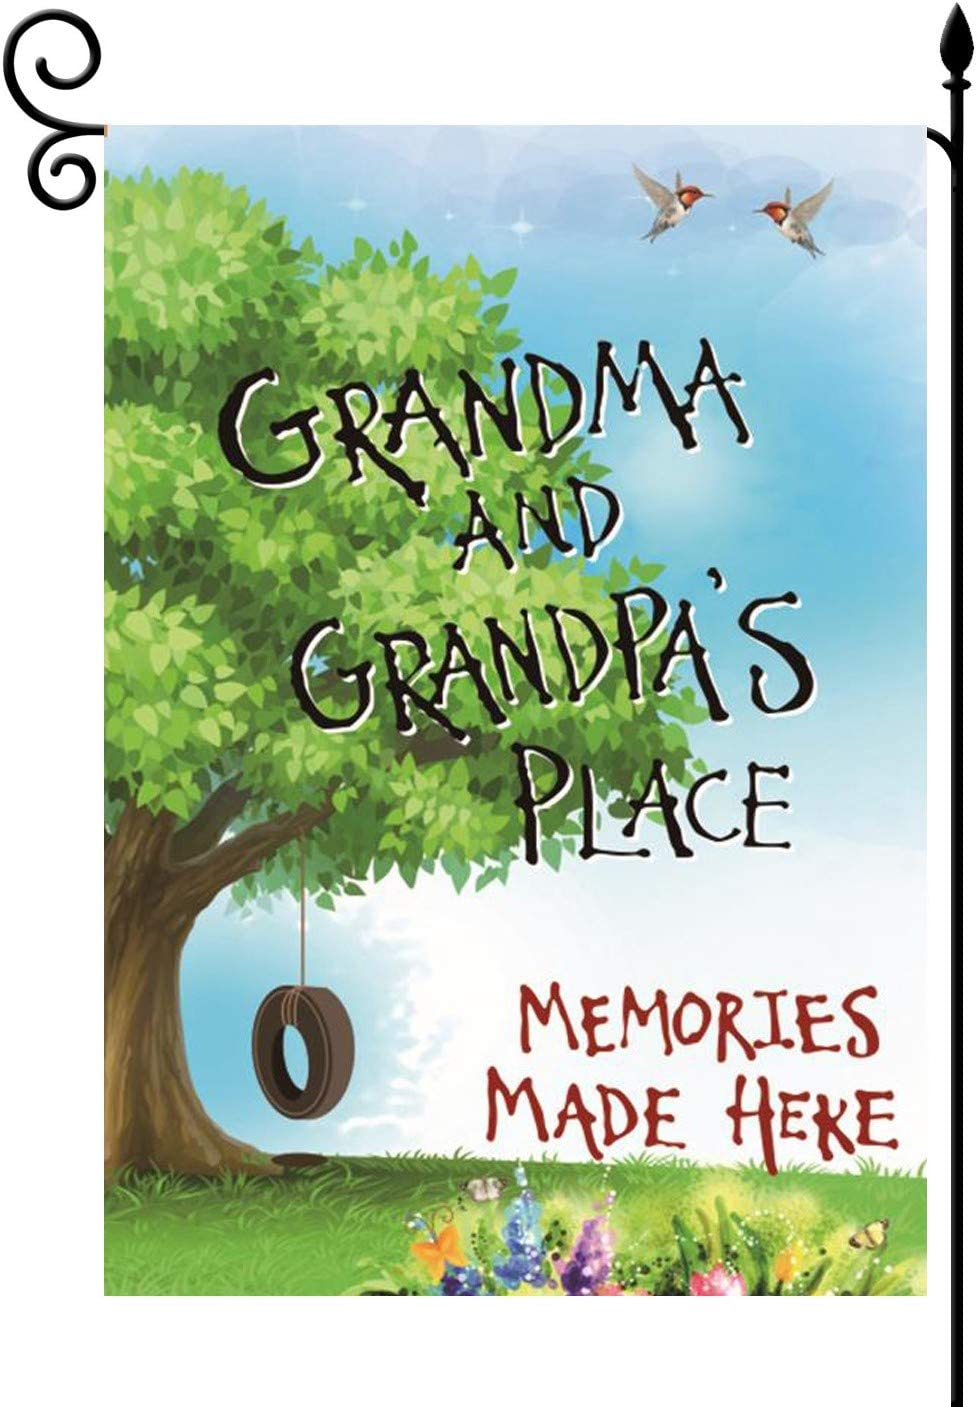 YaoChong Grandma and Grandpa's Place Garden Flag Vertical Double Sided,Autumn Spring Summer Gifts Memories Made Here Yard Lawn Decorations 12.5x18 Inch